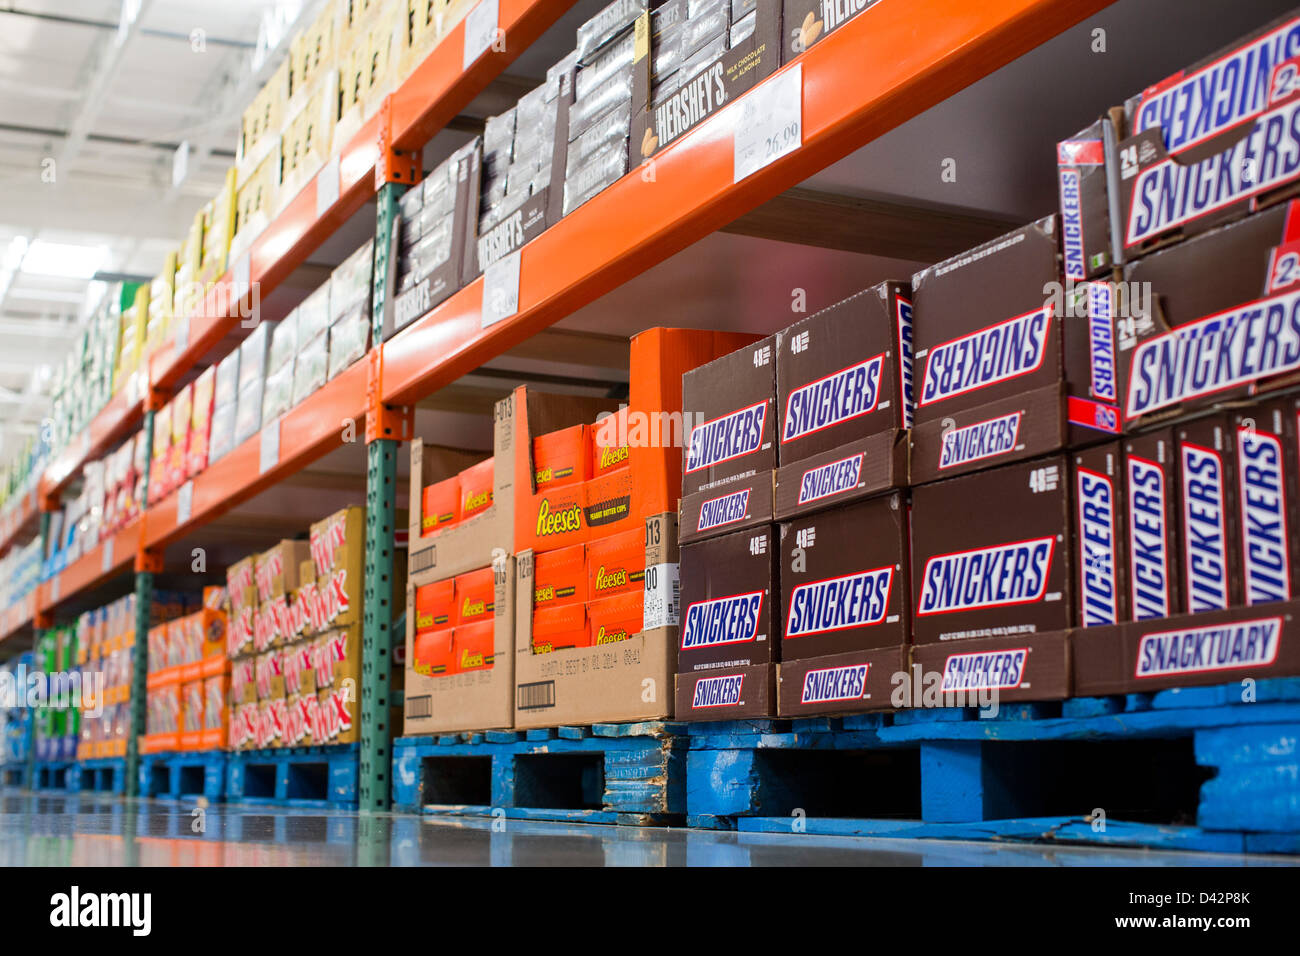 Snickers reeses peanut butter cups twix and hersheys bars on snickers reeses peanut butter cups twix and hersheys bars on display at a costco wholesale warehouse club thecheapjerseys Images